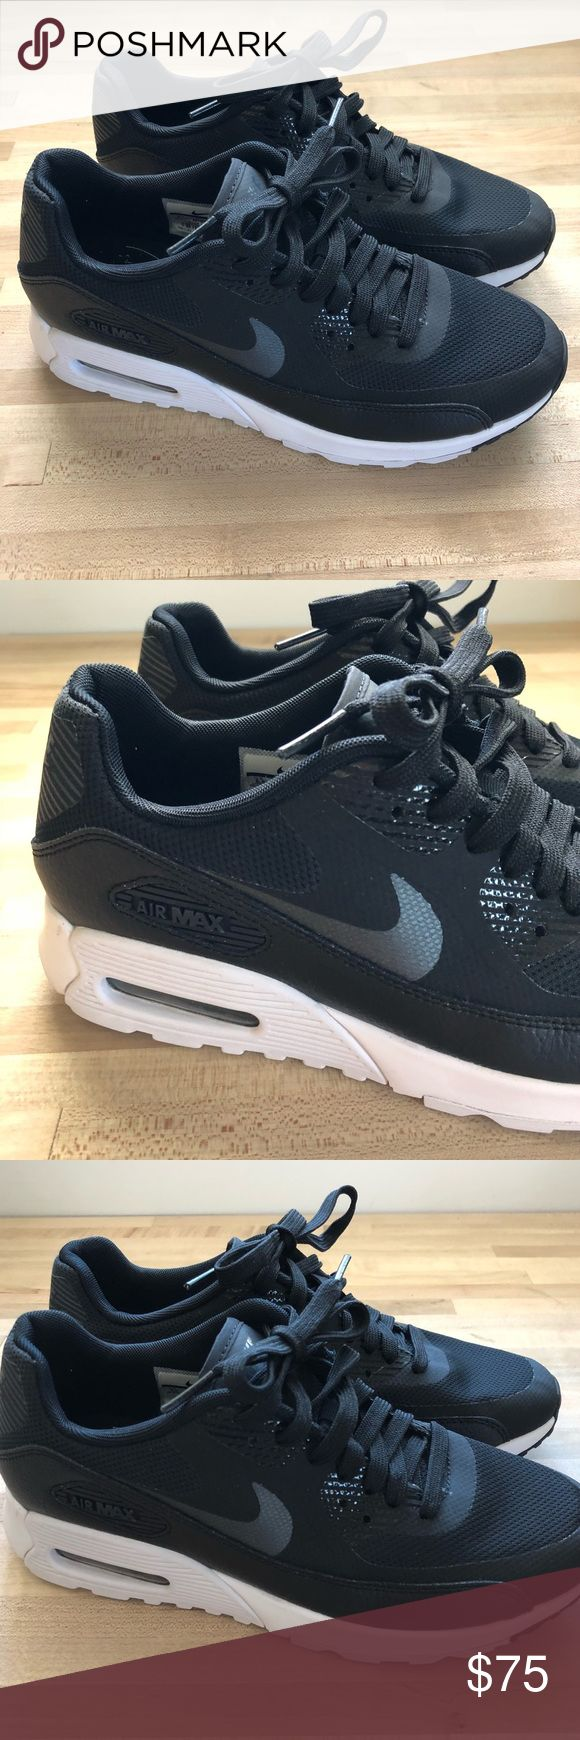 Nike Women's Air Max 90 Ultra 2.0 Running Sneakers Excellent pair of women's Nike Air Max in pristine condition they fit small wore three times | clean and ready to be shipped | no box | to me they run small I wear a 6.5 but they were definitely snug Nike Shoes Sneakers